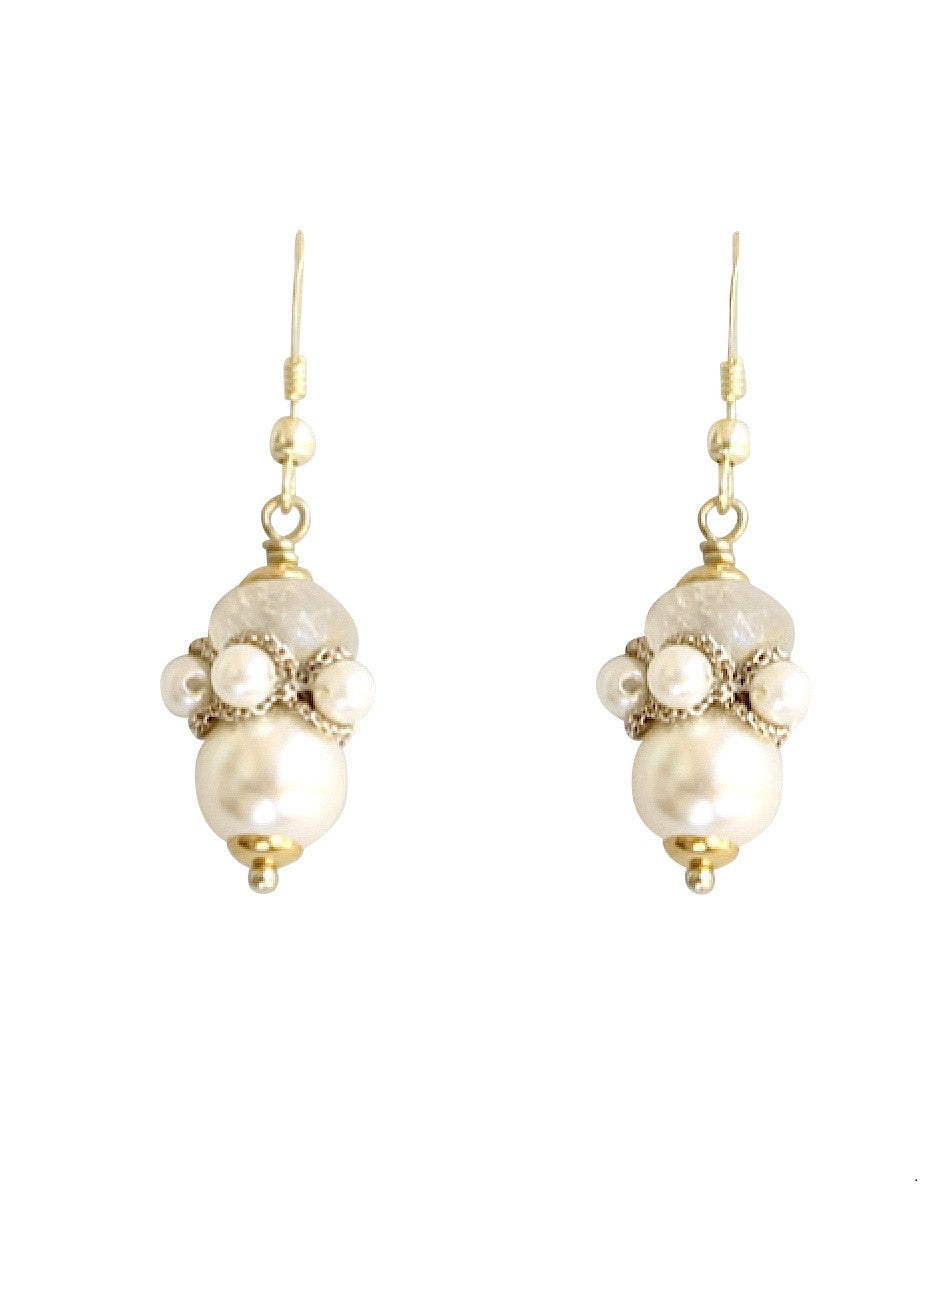 Iron quartz & pearl drops with 24K gold plated silver hooks